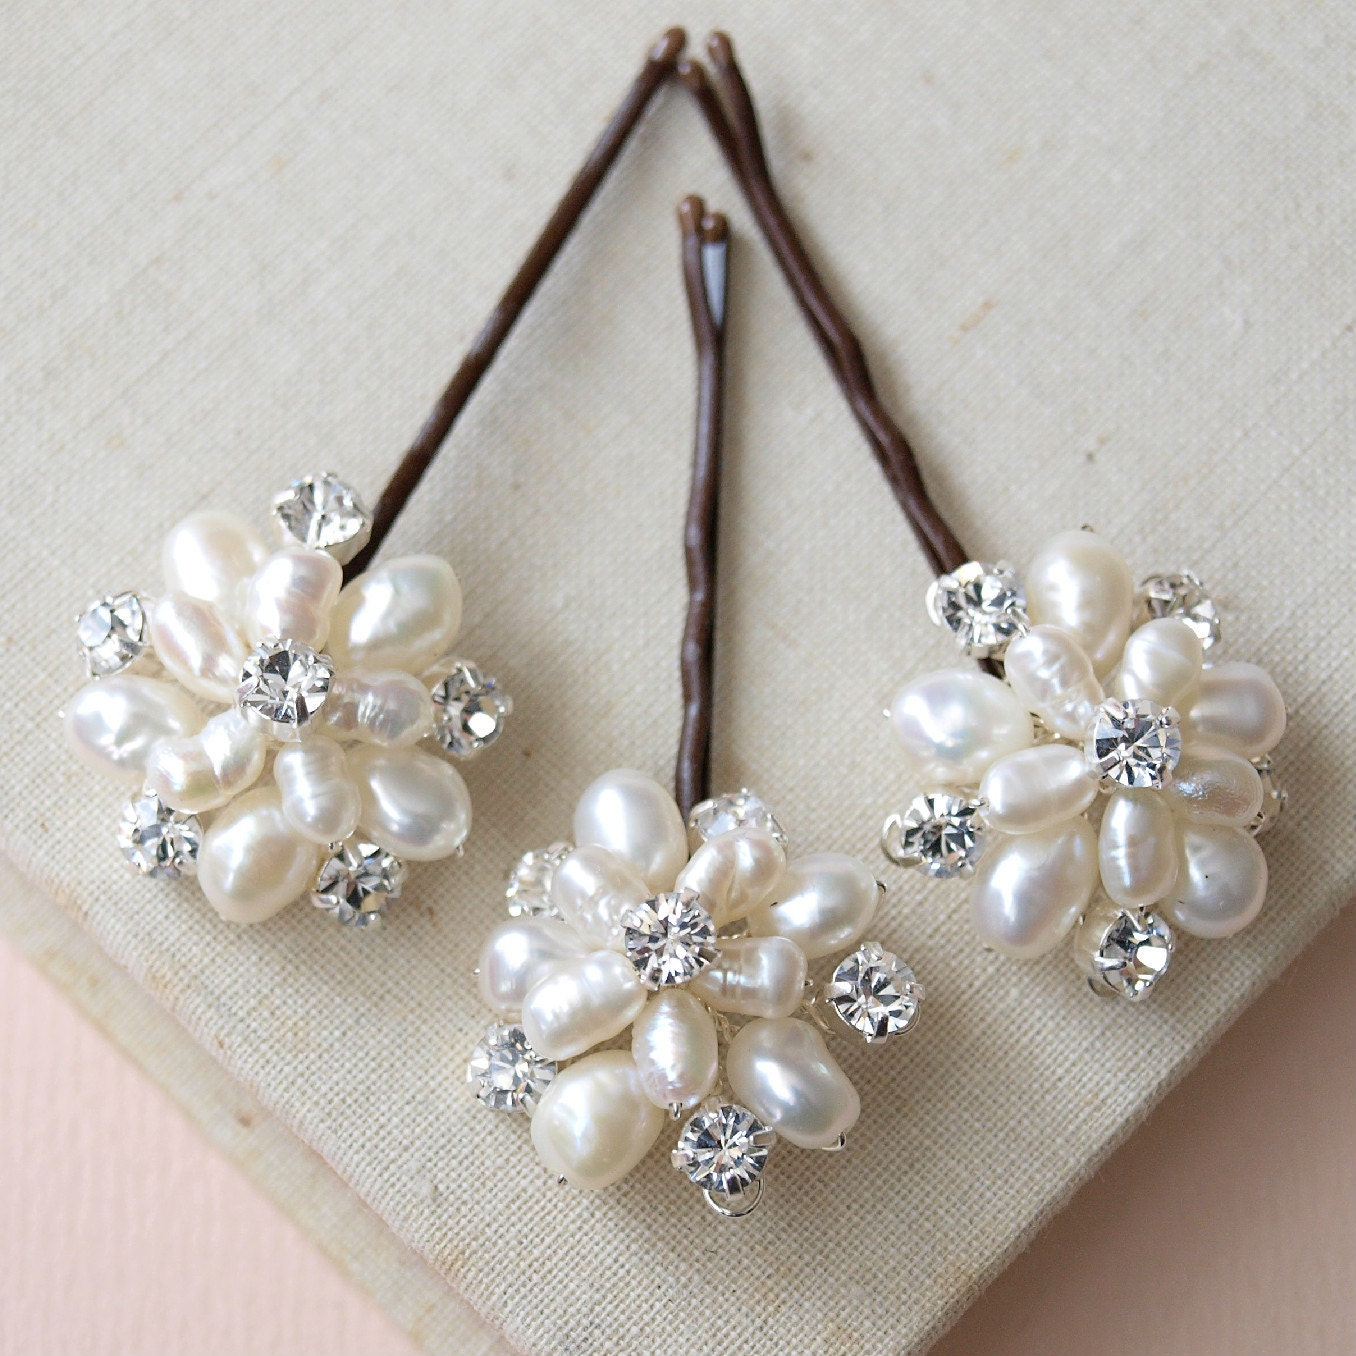 Flora Pearl Hair Pins Wedding Hair Accessories Bridal Flower